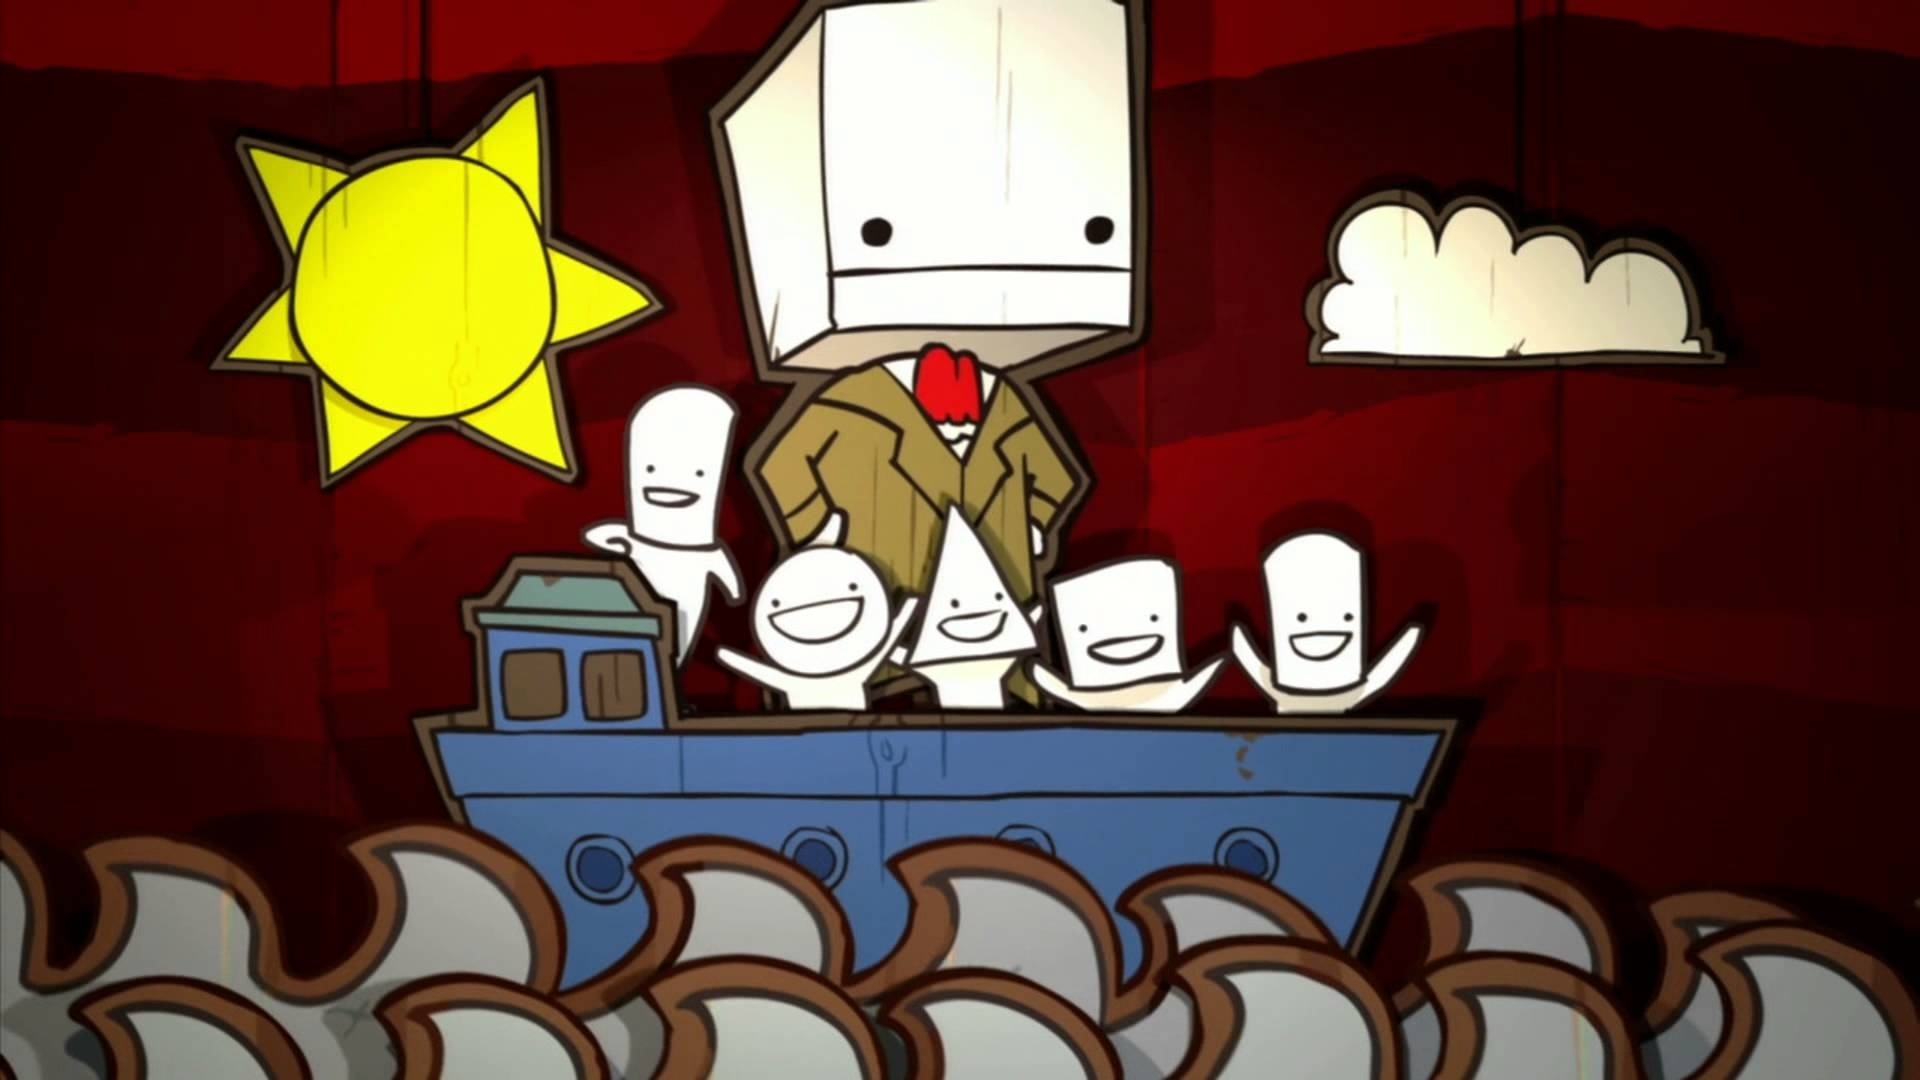 battleblock theater wallpapers high quality | download free